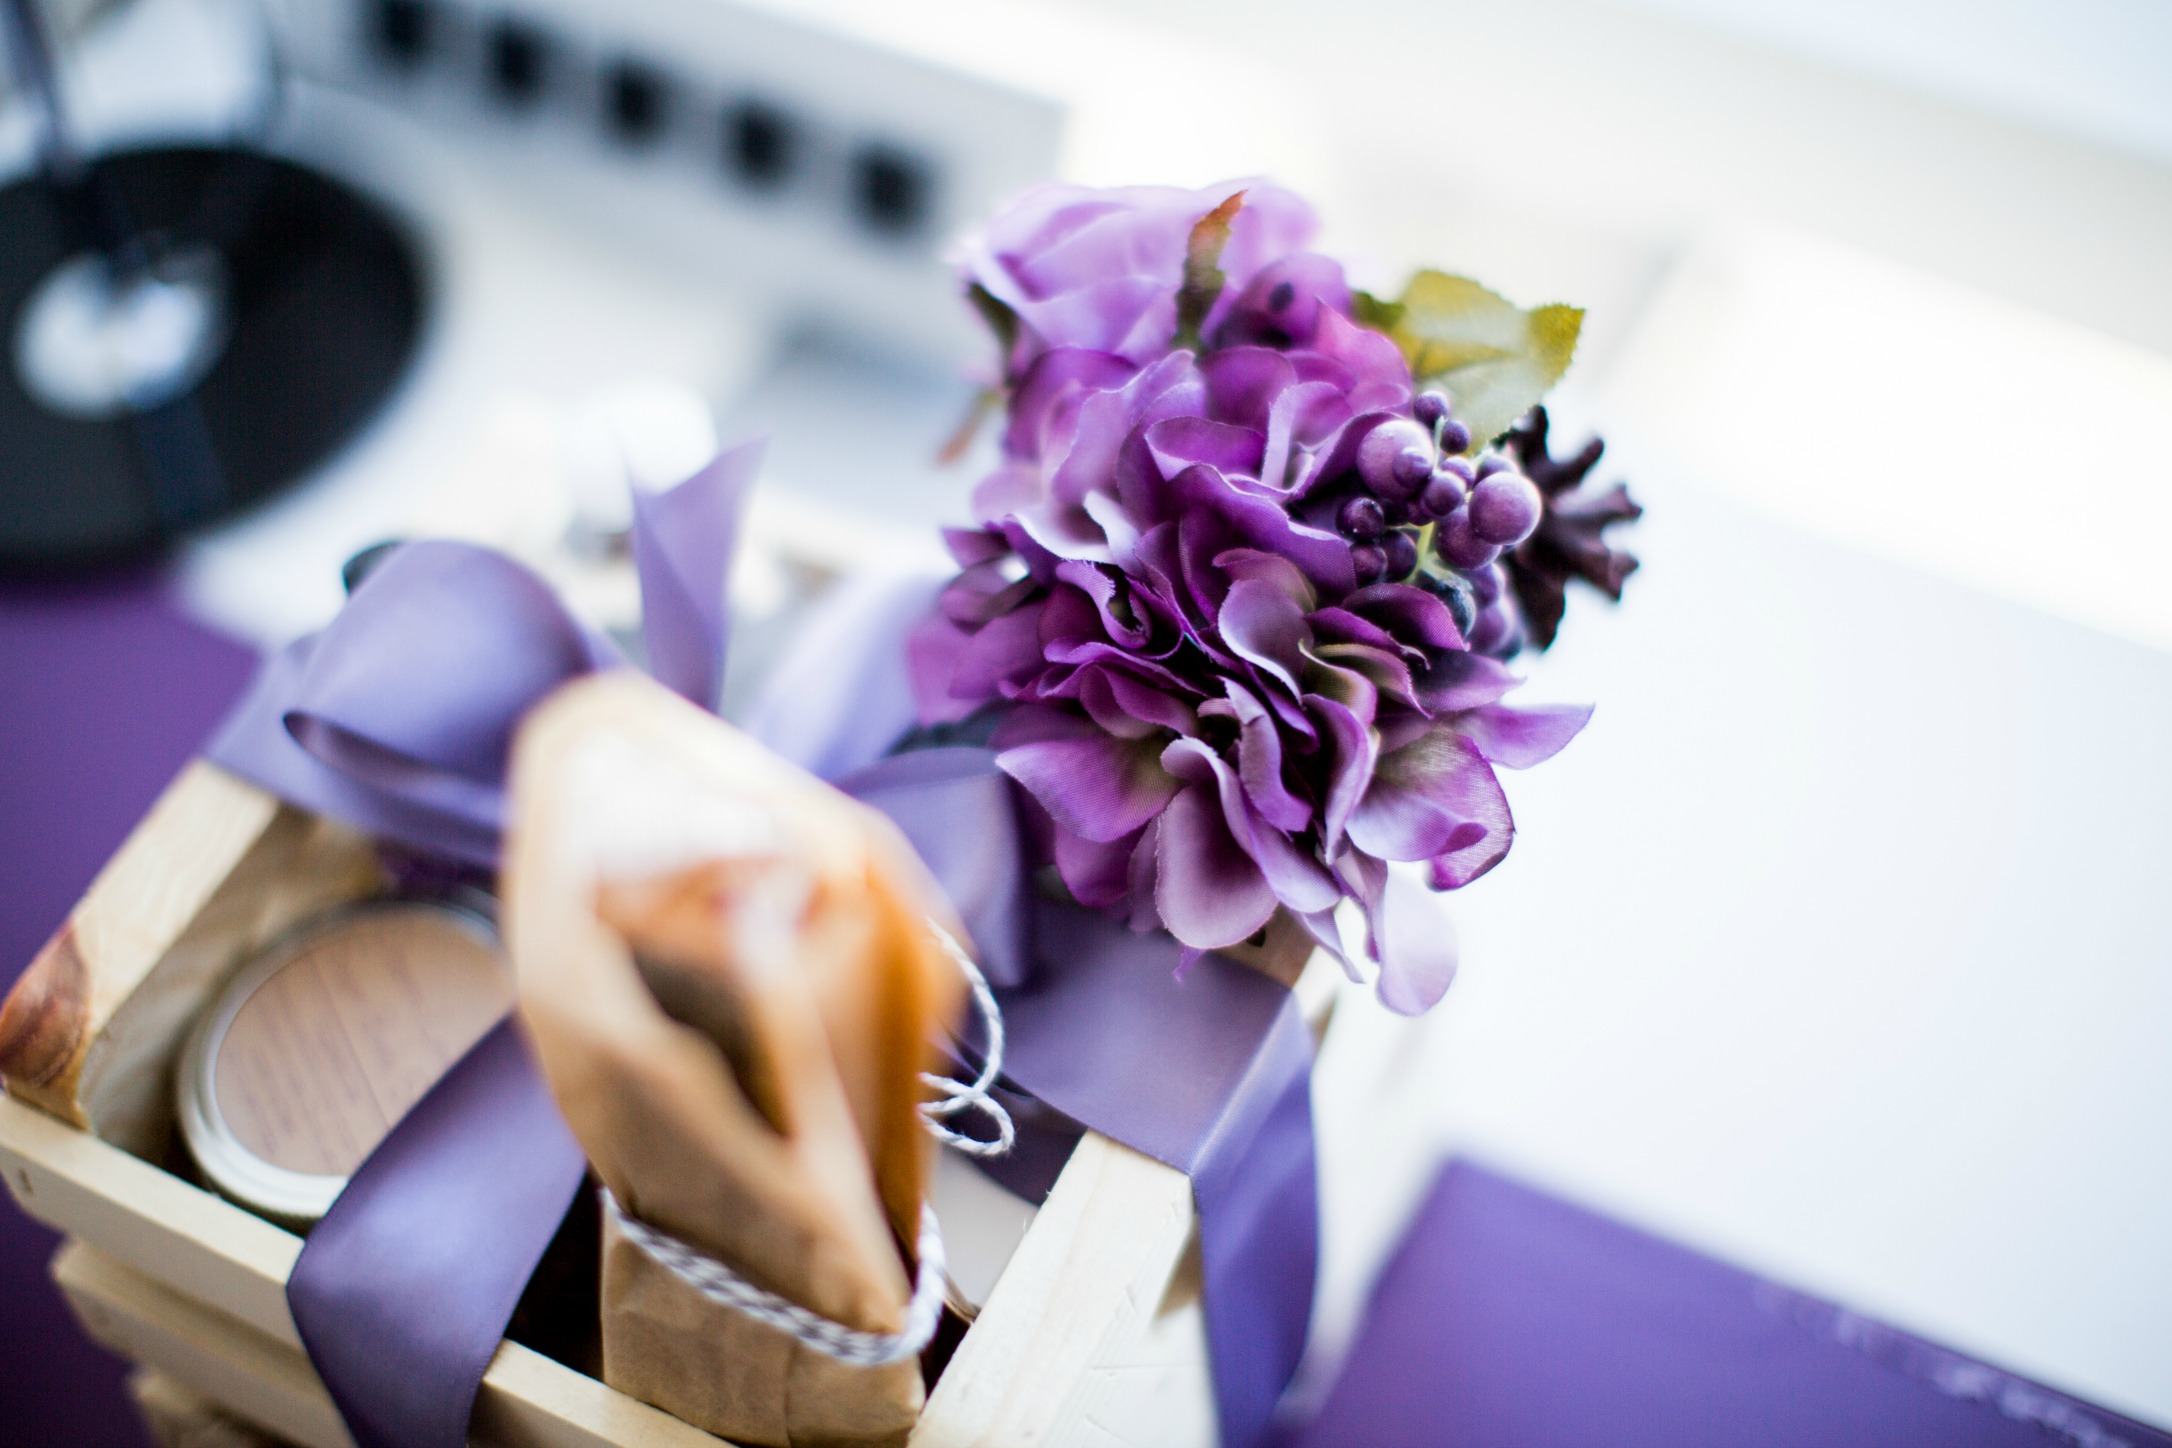 NYC Chic Winter Wedding ǀ Dee Kay Events ǀ Wedding Consultant ǀ Welcome Gift